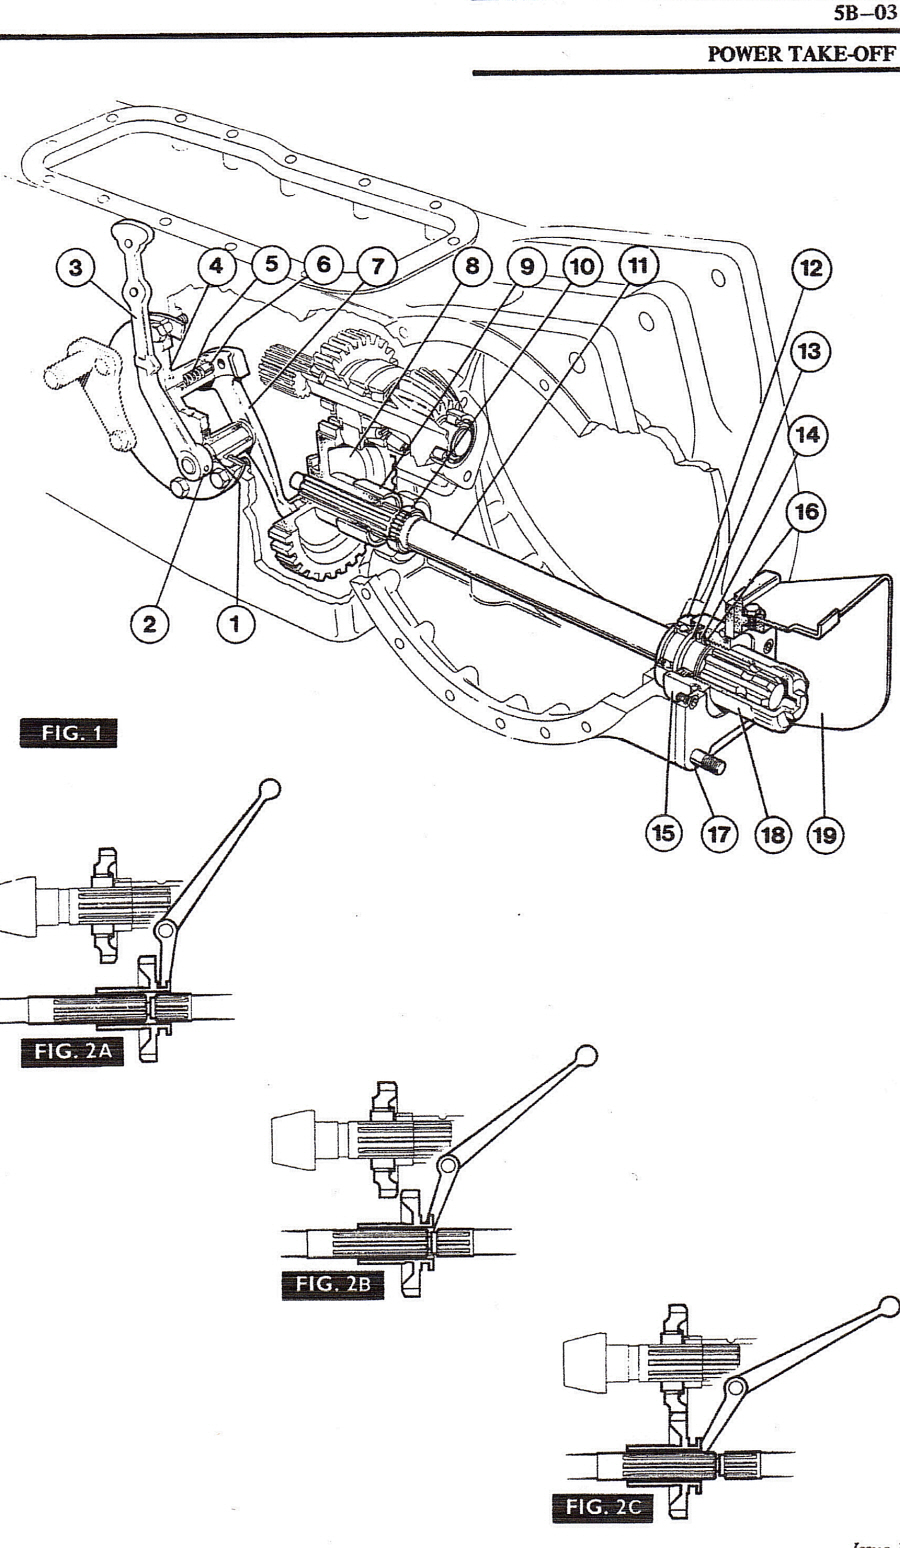 1y4wa Own Rv Ford 460 Engine Blew Belt moreover 2012 Honda Civic Si Wiring Diagram moreover Engine and jet drive furthermore Stock Vector Hand Drawn  bine Harvester On White Background Vector Illustration moreover 8p7fu I M Having Steering Problem John Deere 310c Backhoe Steering Wheel. on john deere fuel pump problem